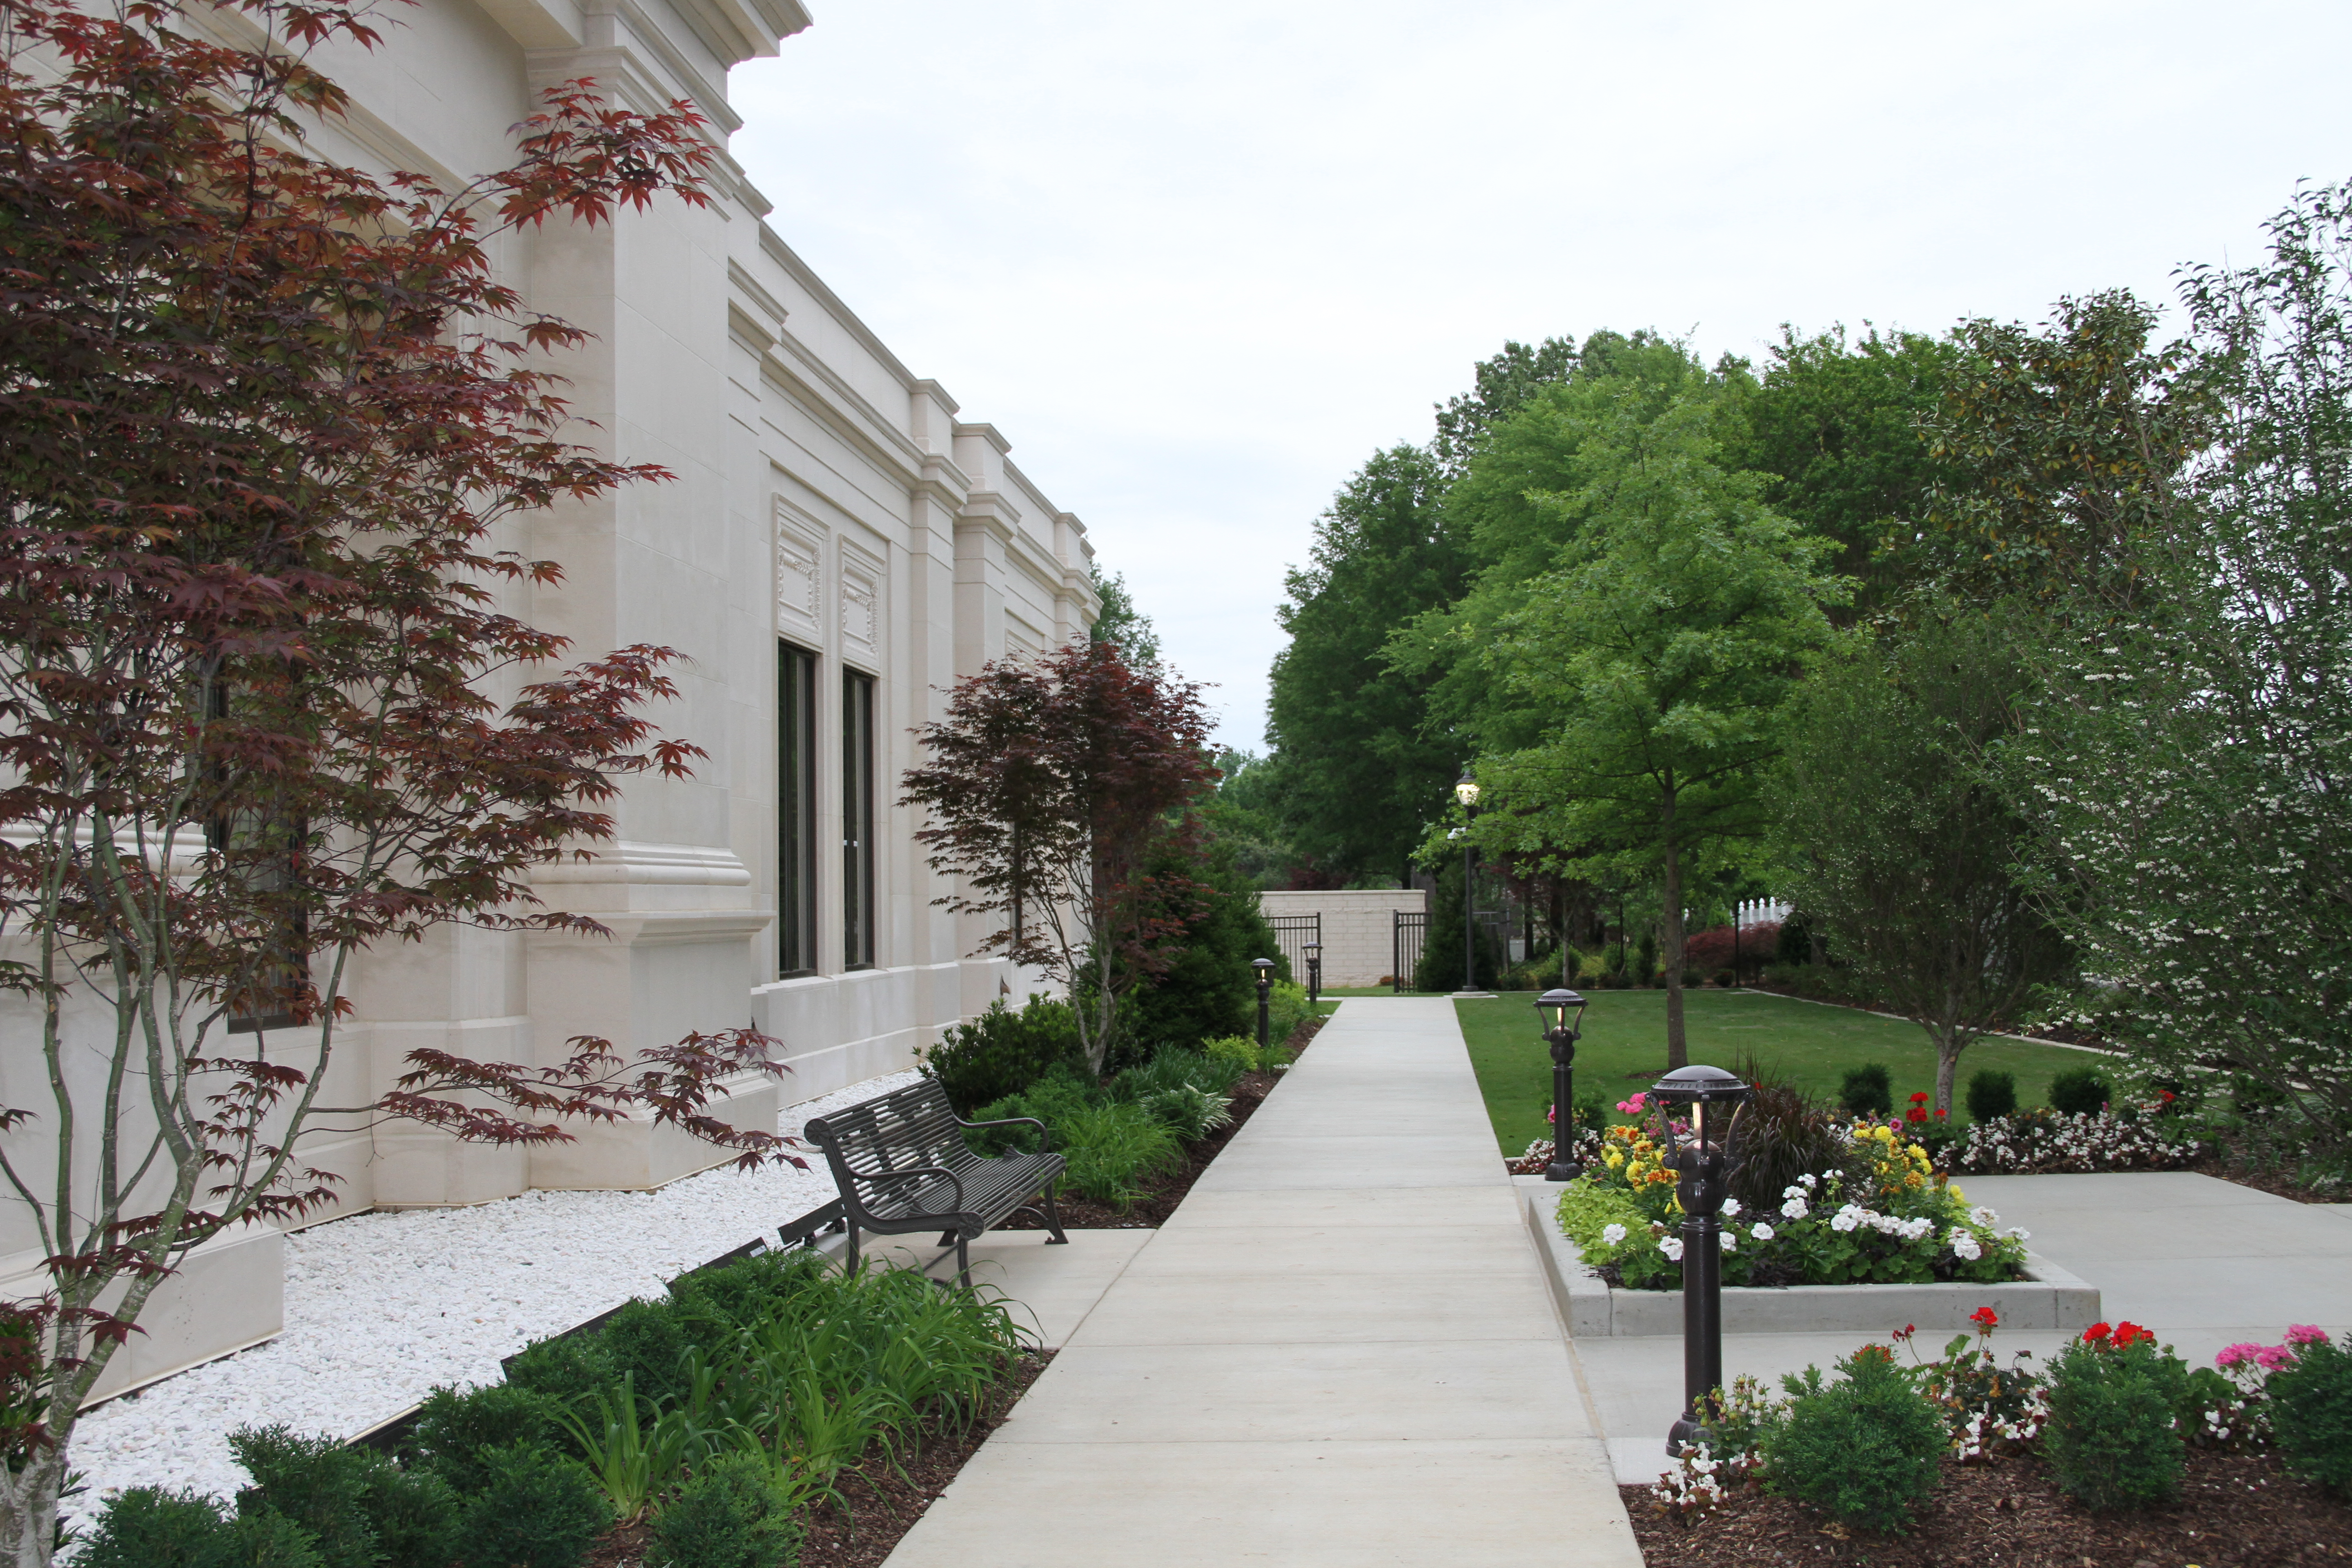 The finished grounds of the Memphis Tennessee Temple on May 3, 2019.